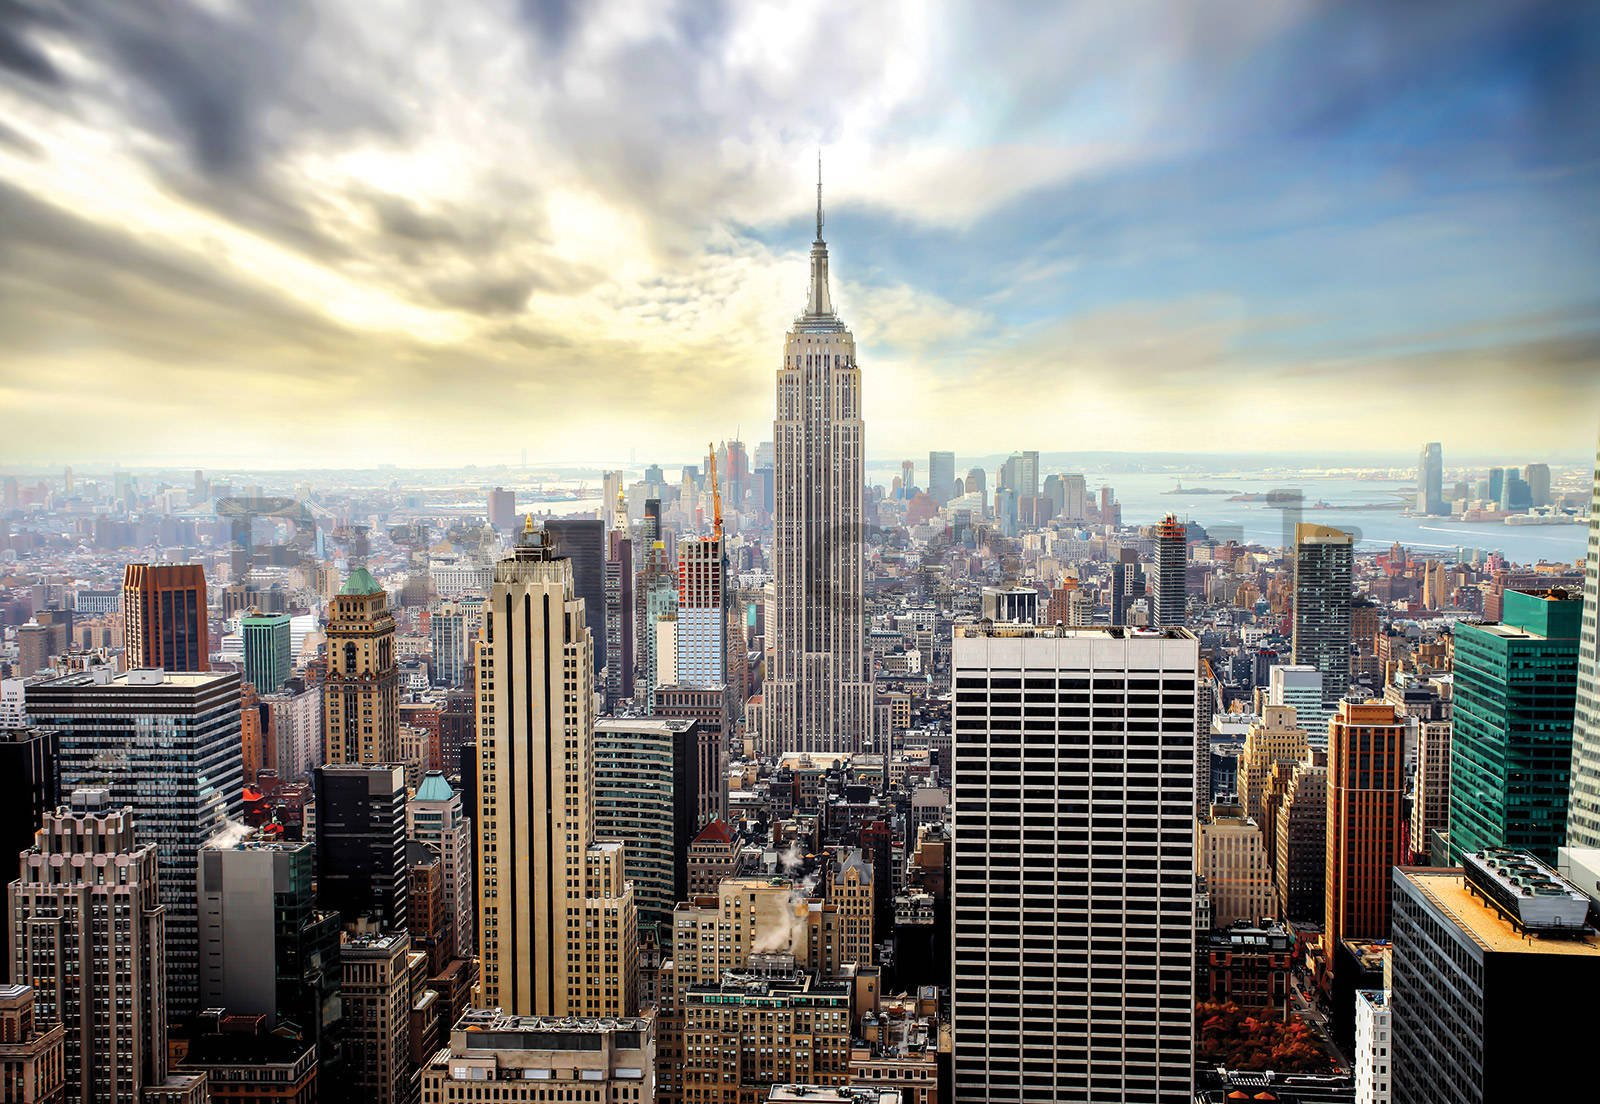 Wall mural: View of New York - 368x254cm